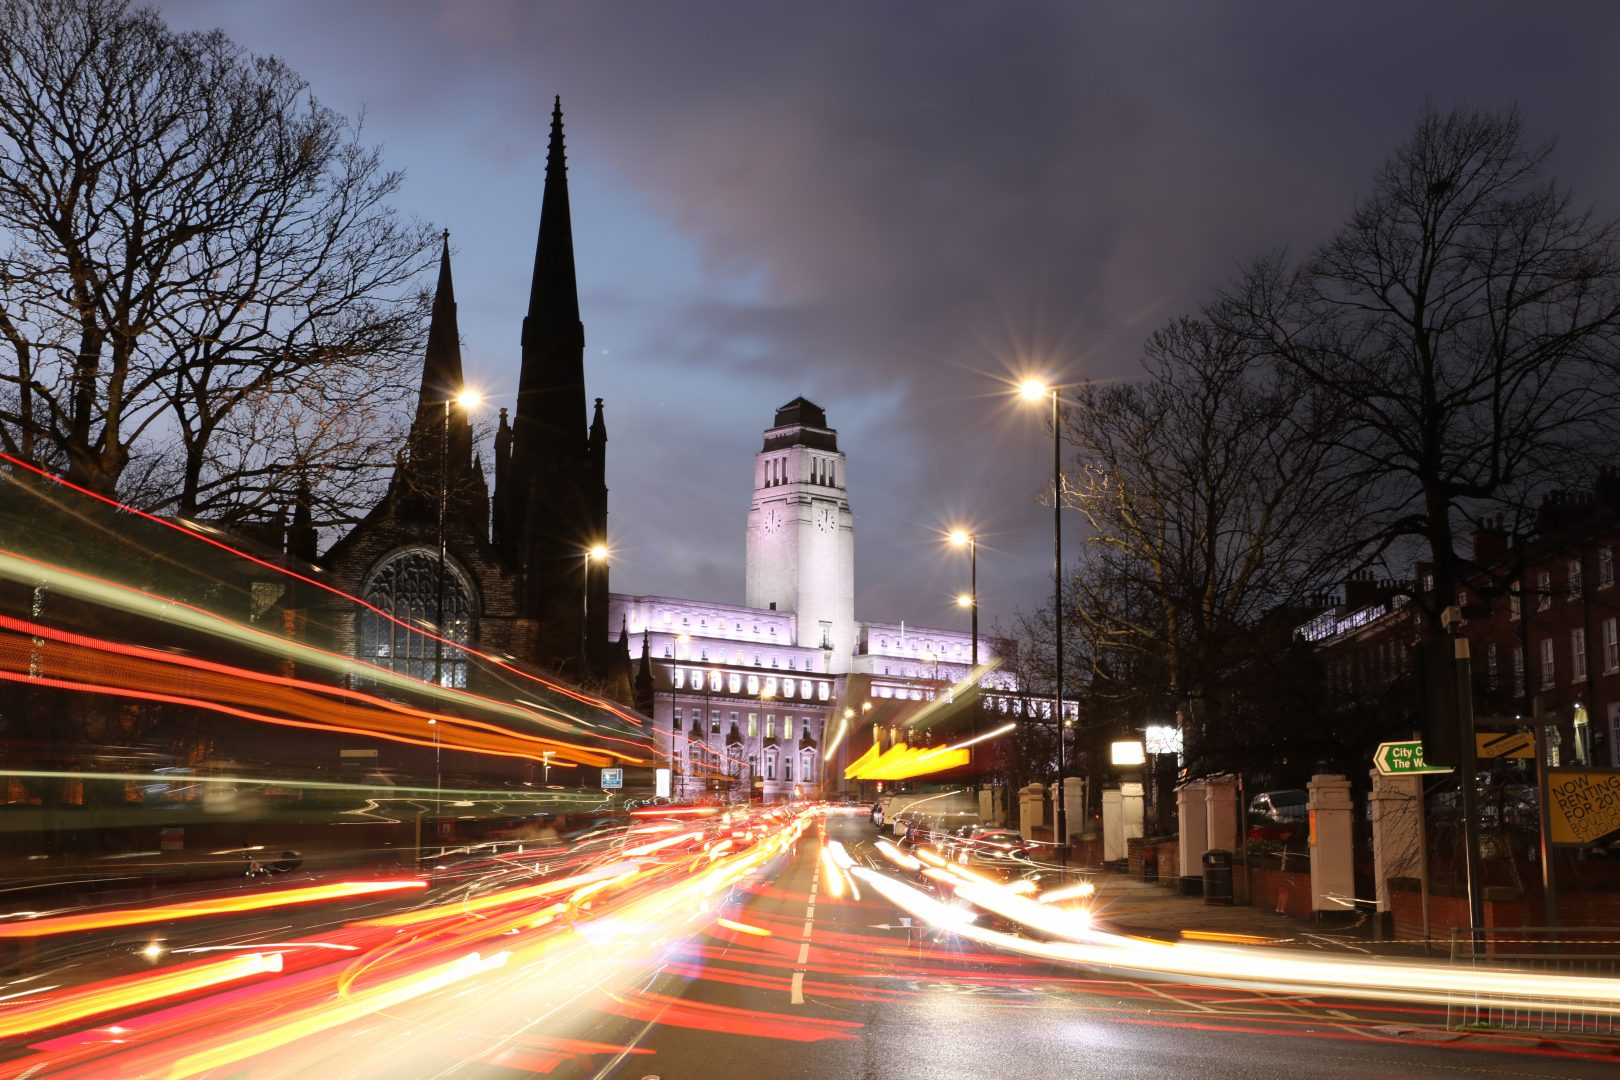 University of Leeds at night